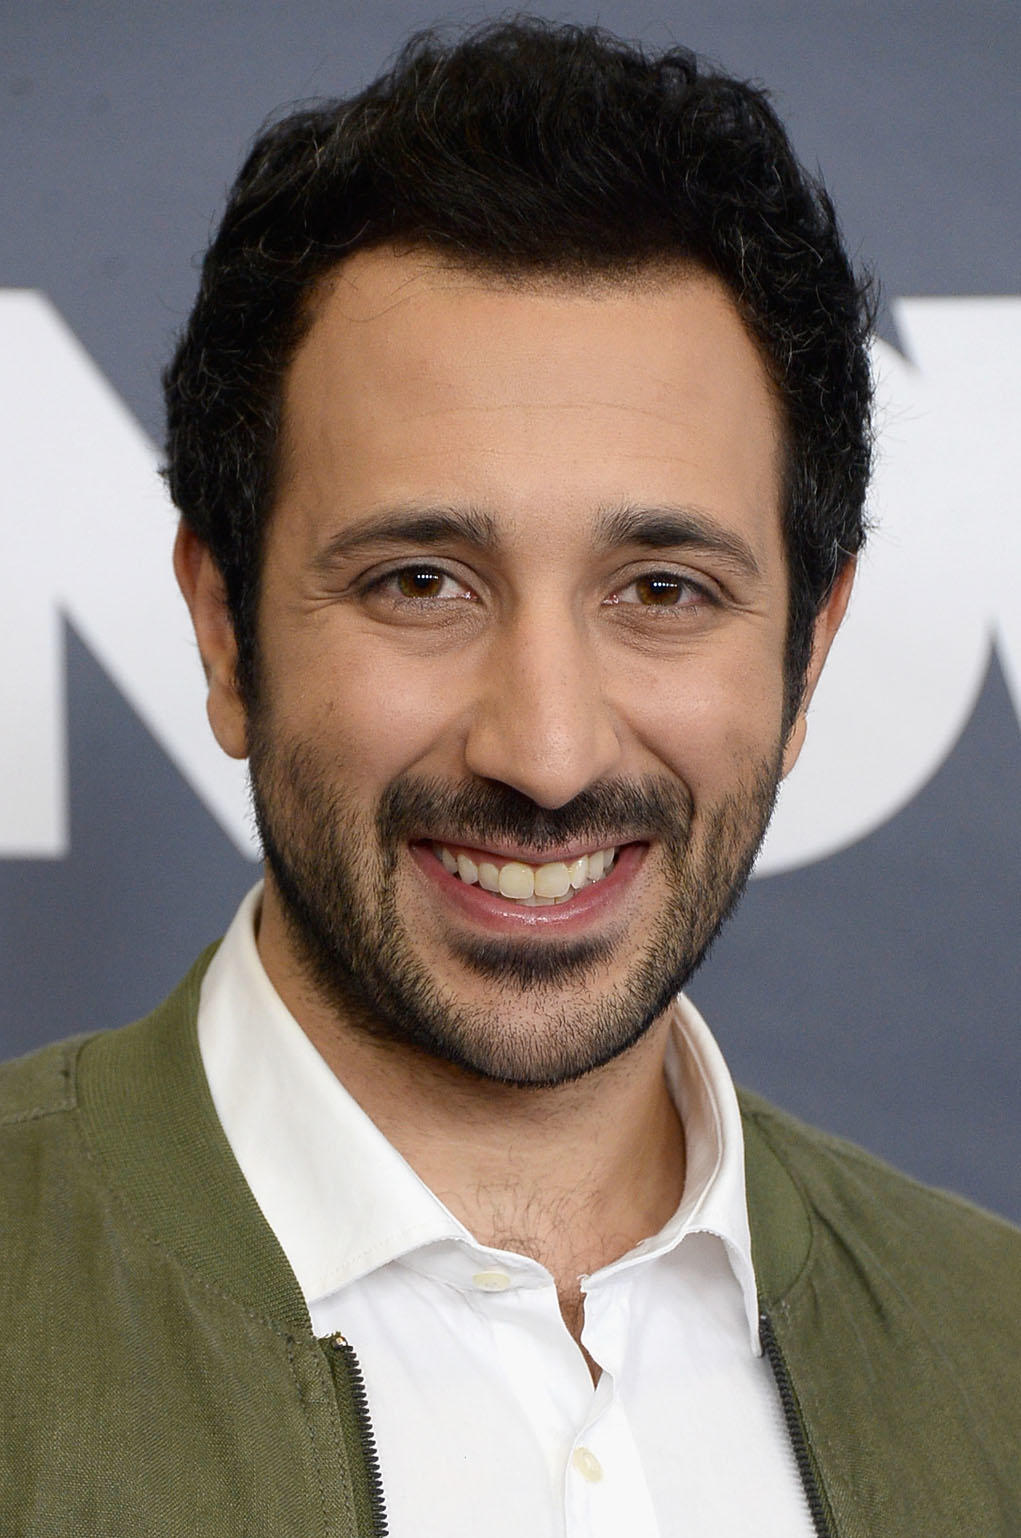 Desmin Borges at the FX Networks TCA 2016 Summer Press Tour in Beverly Hills, California.